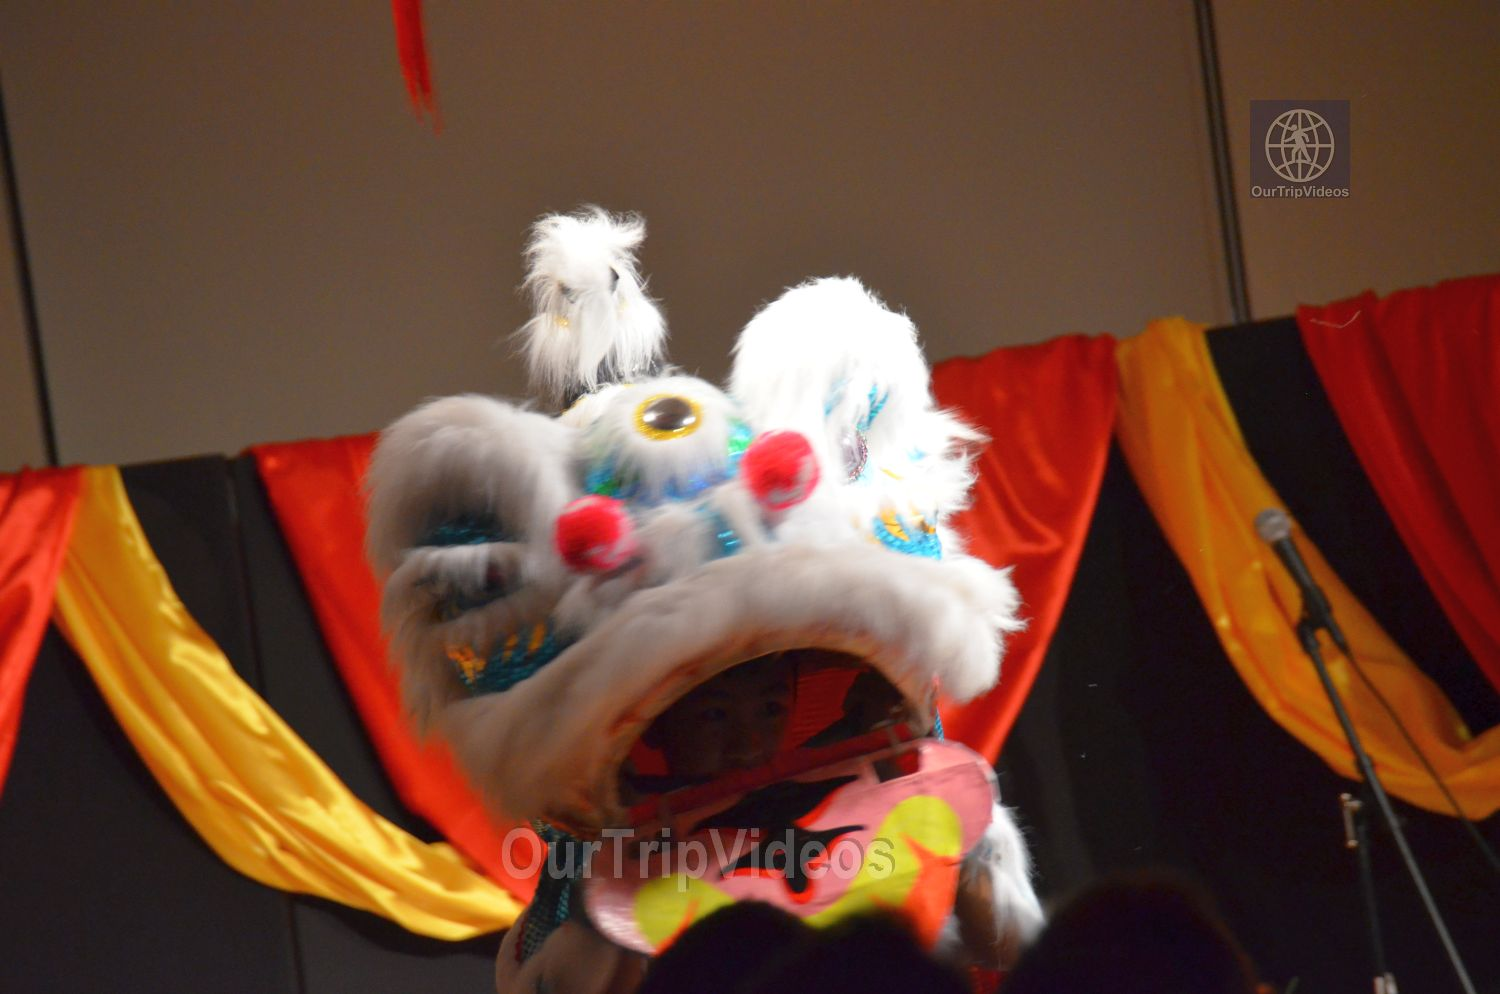 Chinese Lunar New Year Celebration, Milpitas, CA, USA - Picture 21 of 25